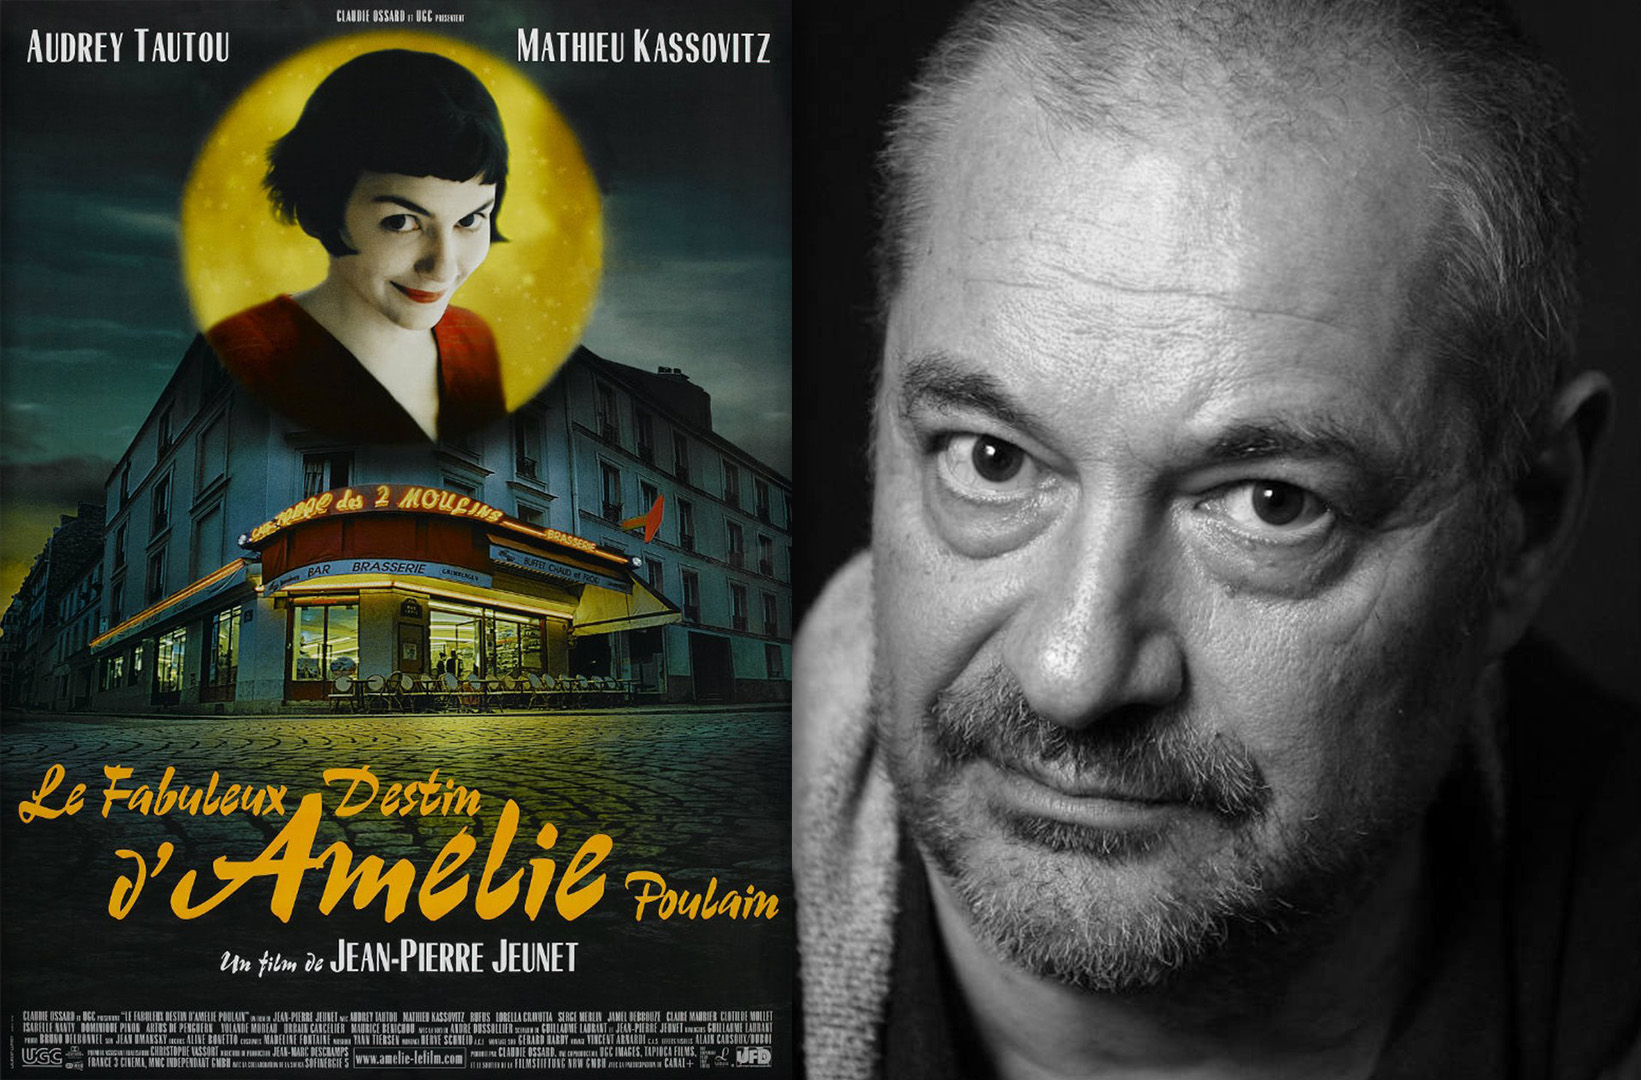 PHILOSOPHICAL CINEMA: Jean-Pierre Jeunet's Amelie is the first instablogger in history or the role of art in the mass market